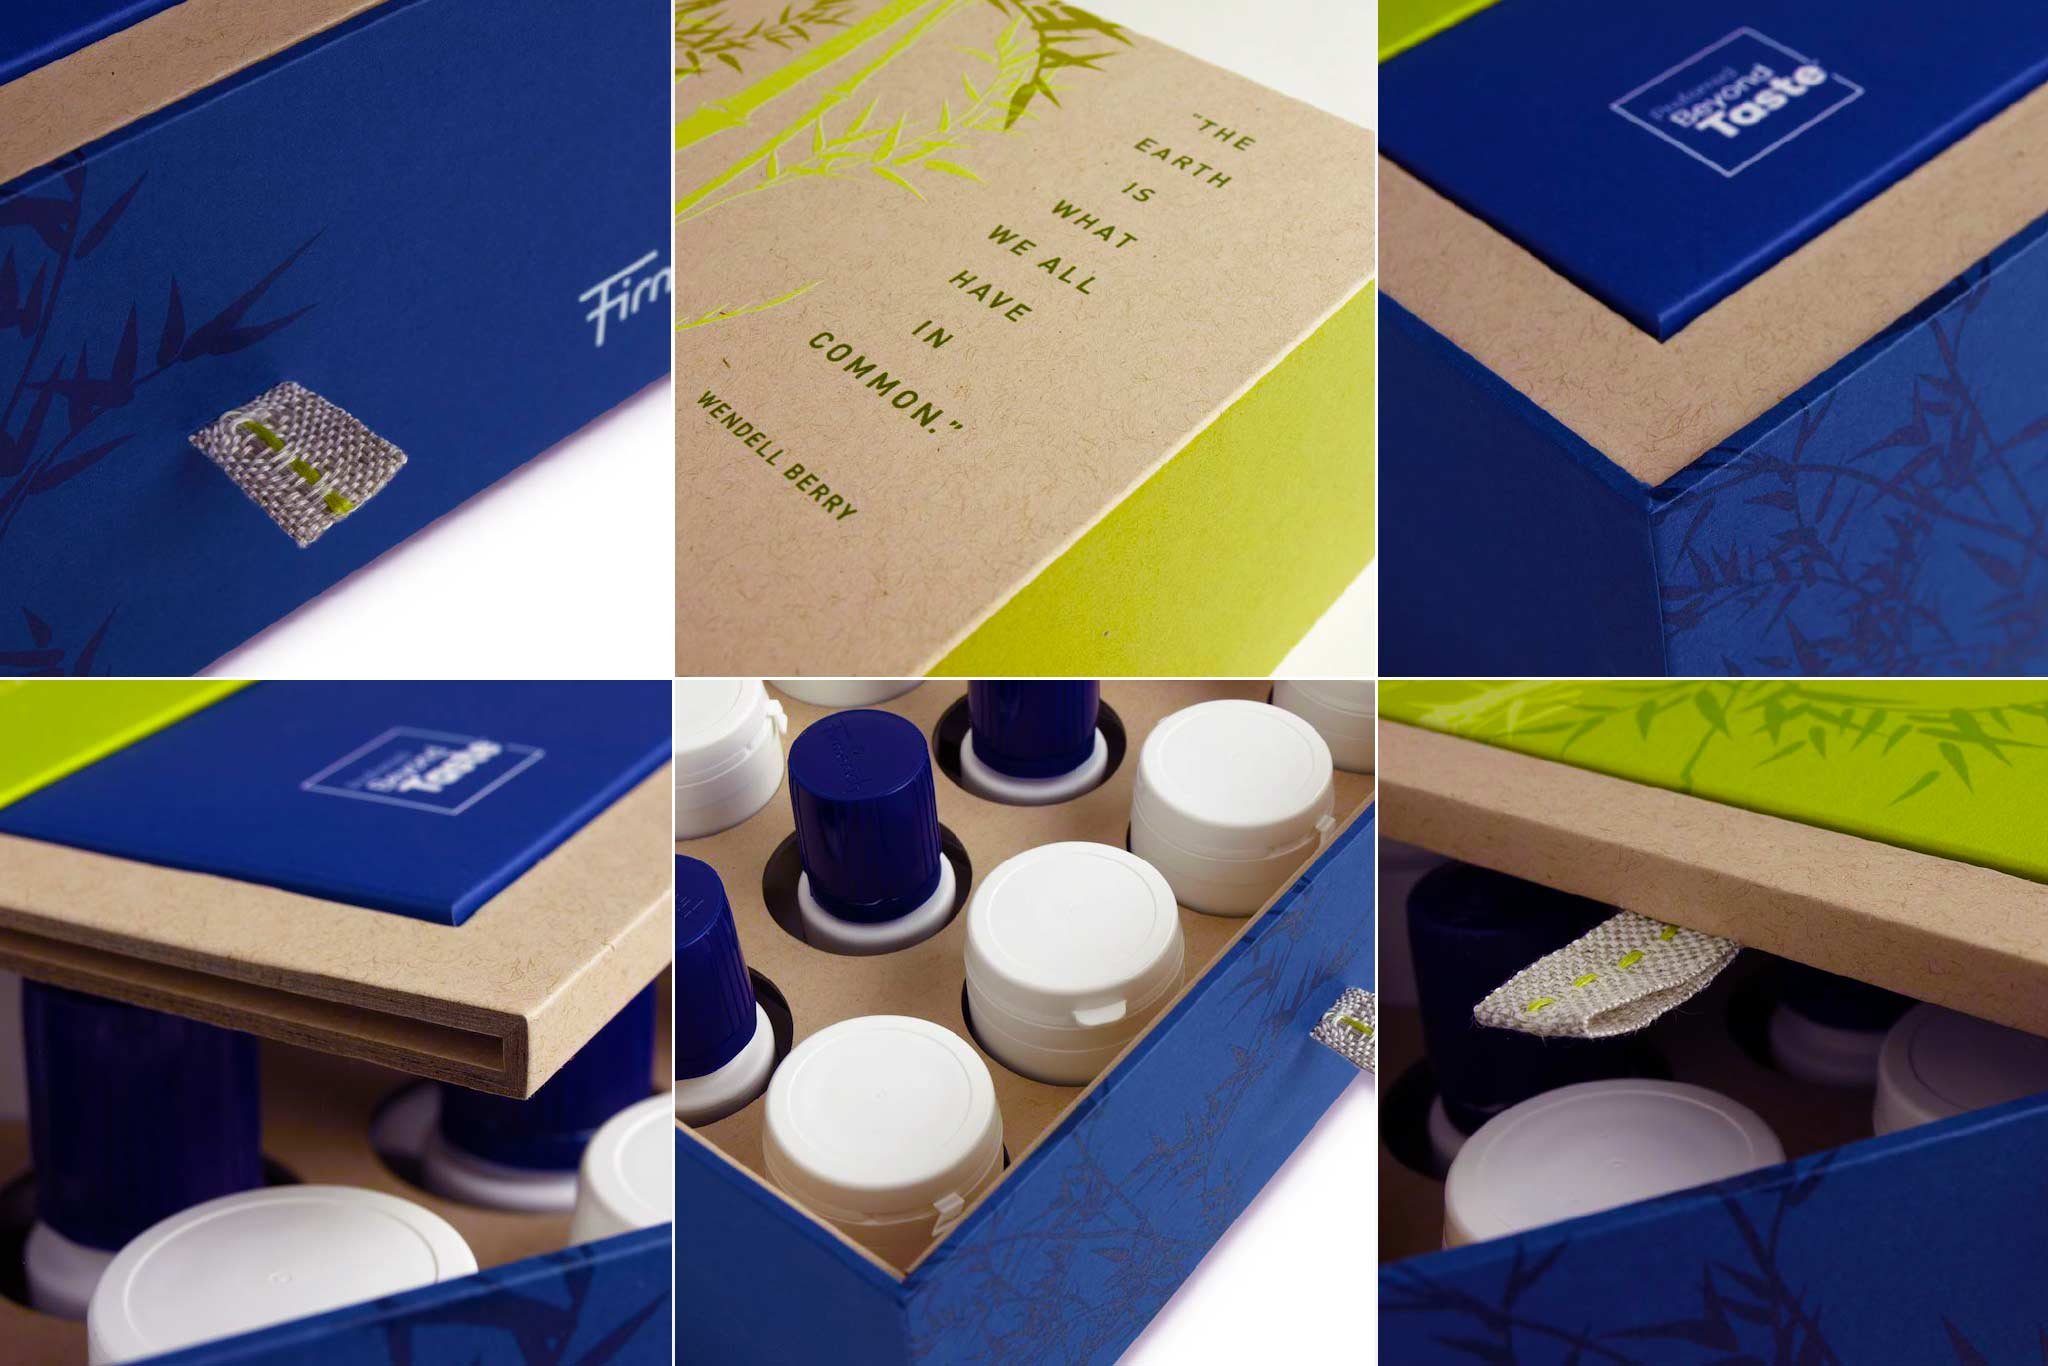 firmenich-sustainability-sample-box_8